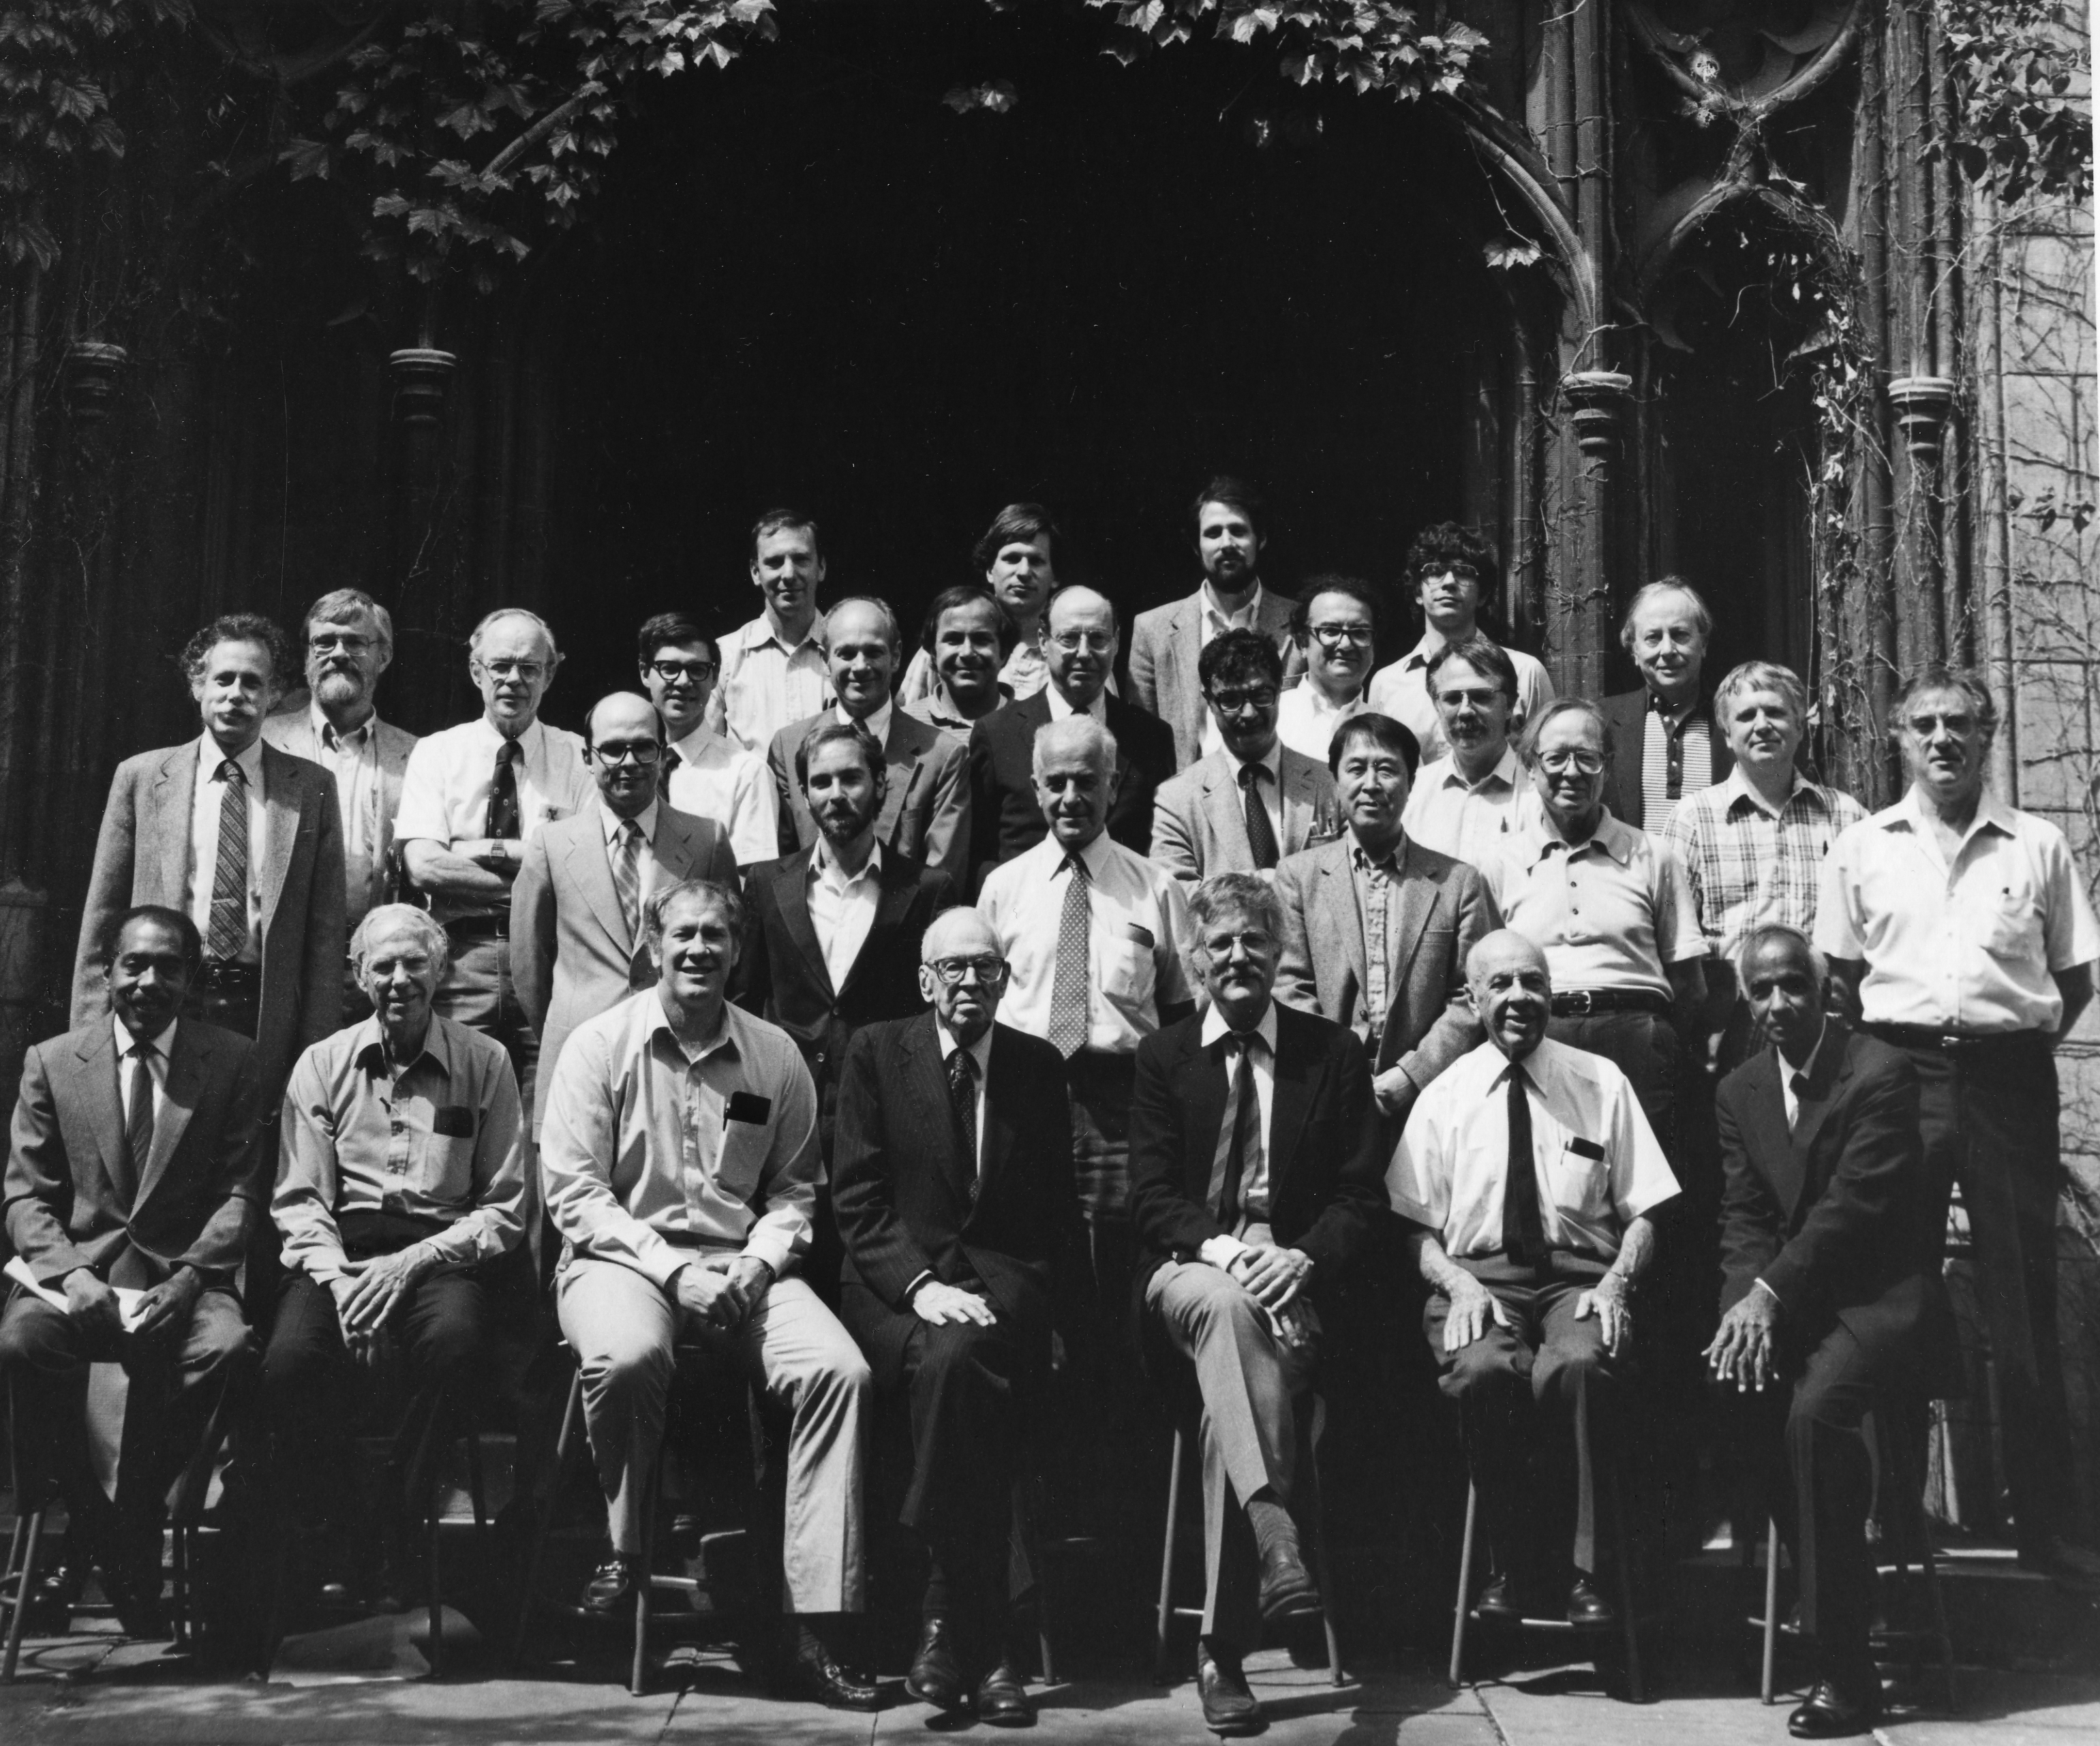 Group photo of the University of Chicago Physics Department